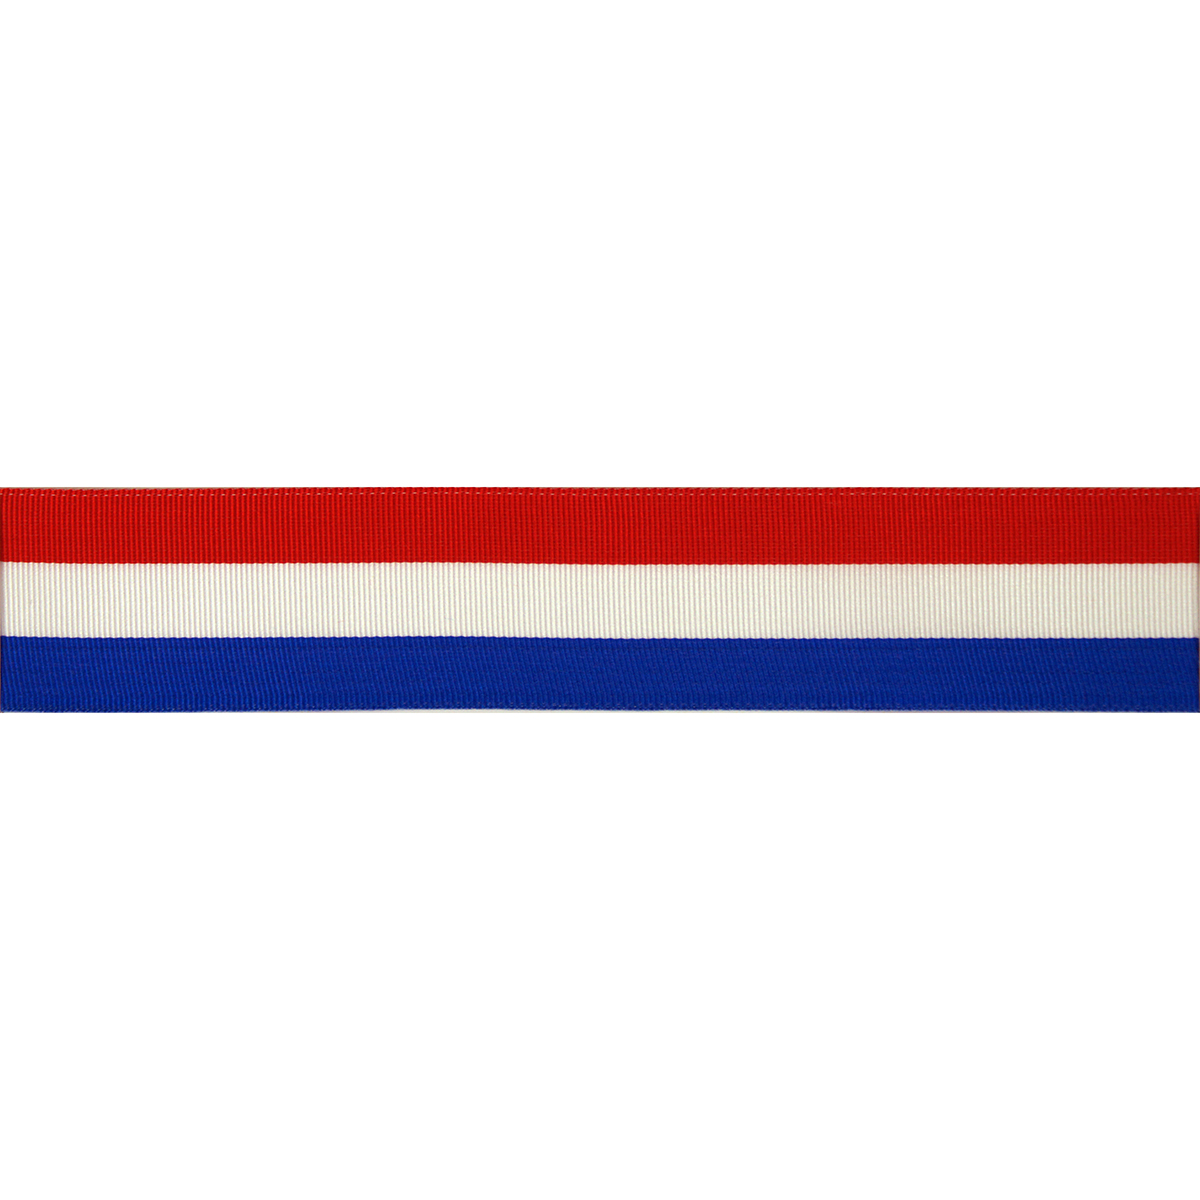 REStyle Ribslint Vlag Rood-Wit-Blauw 10mm